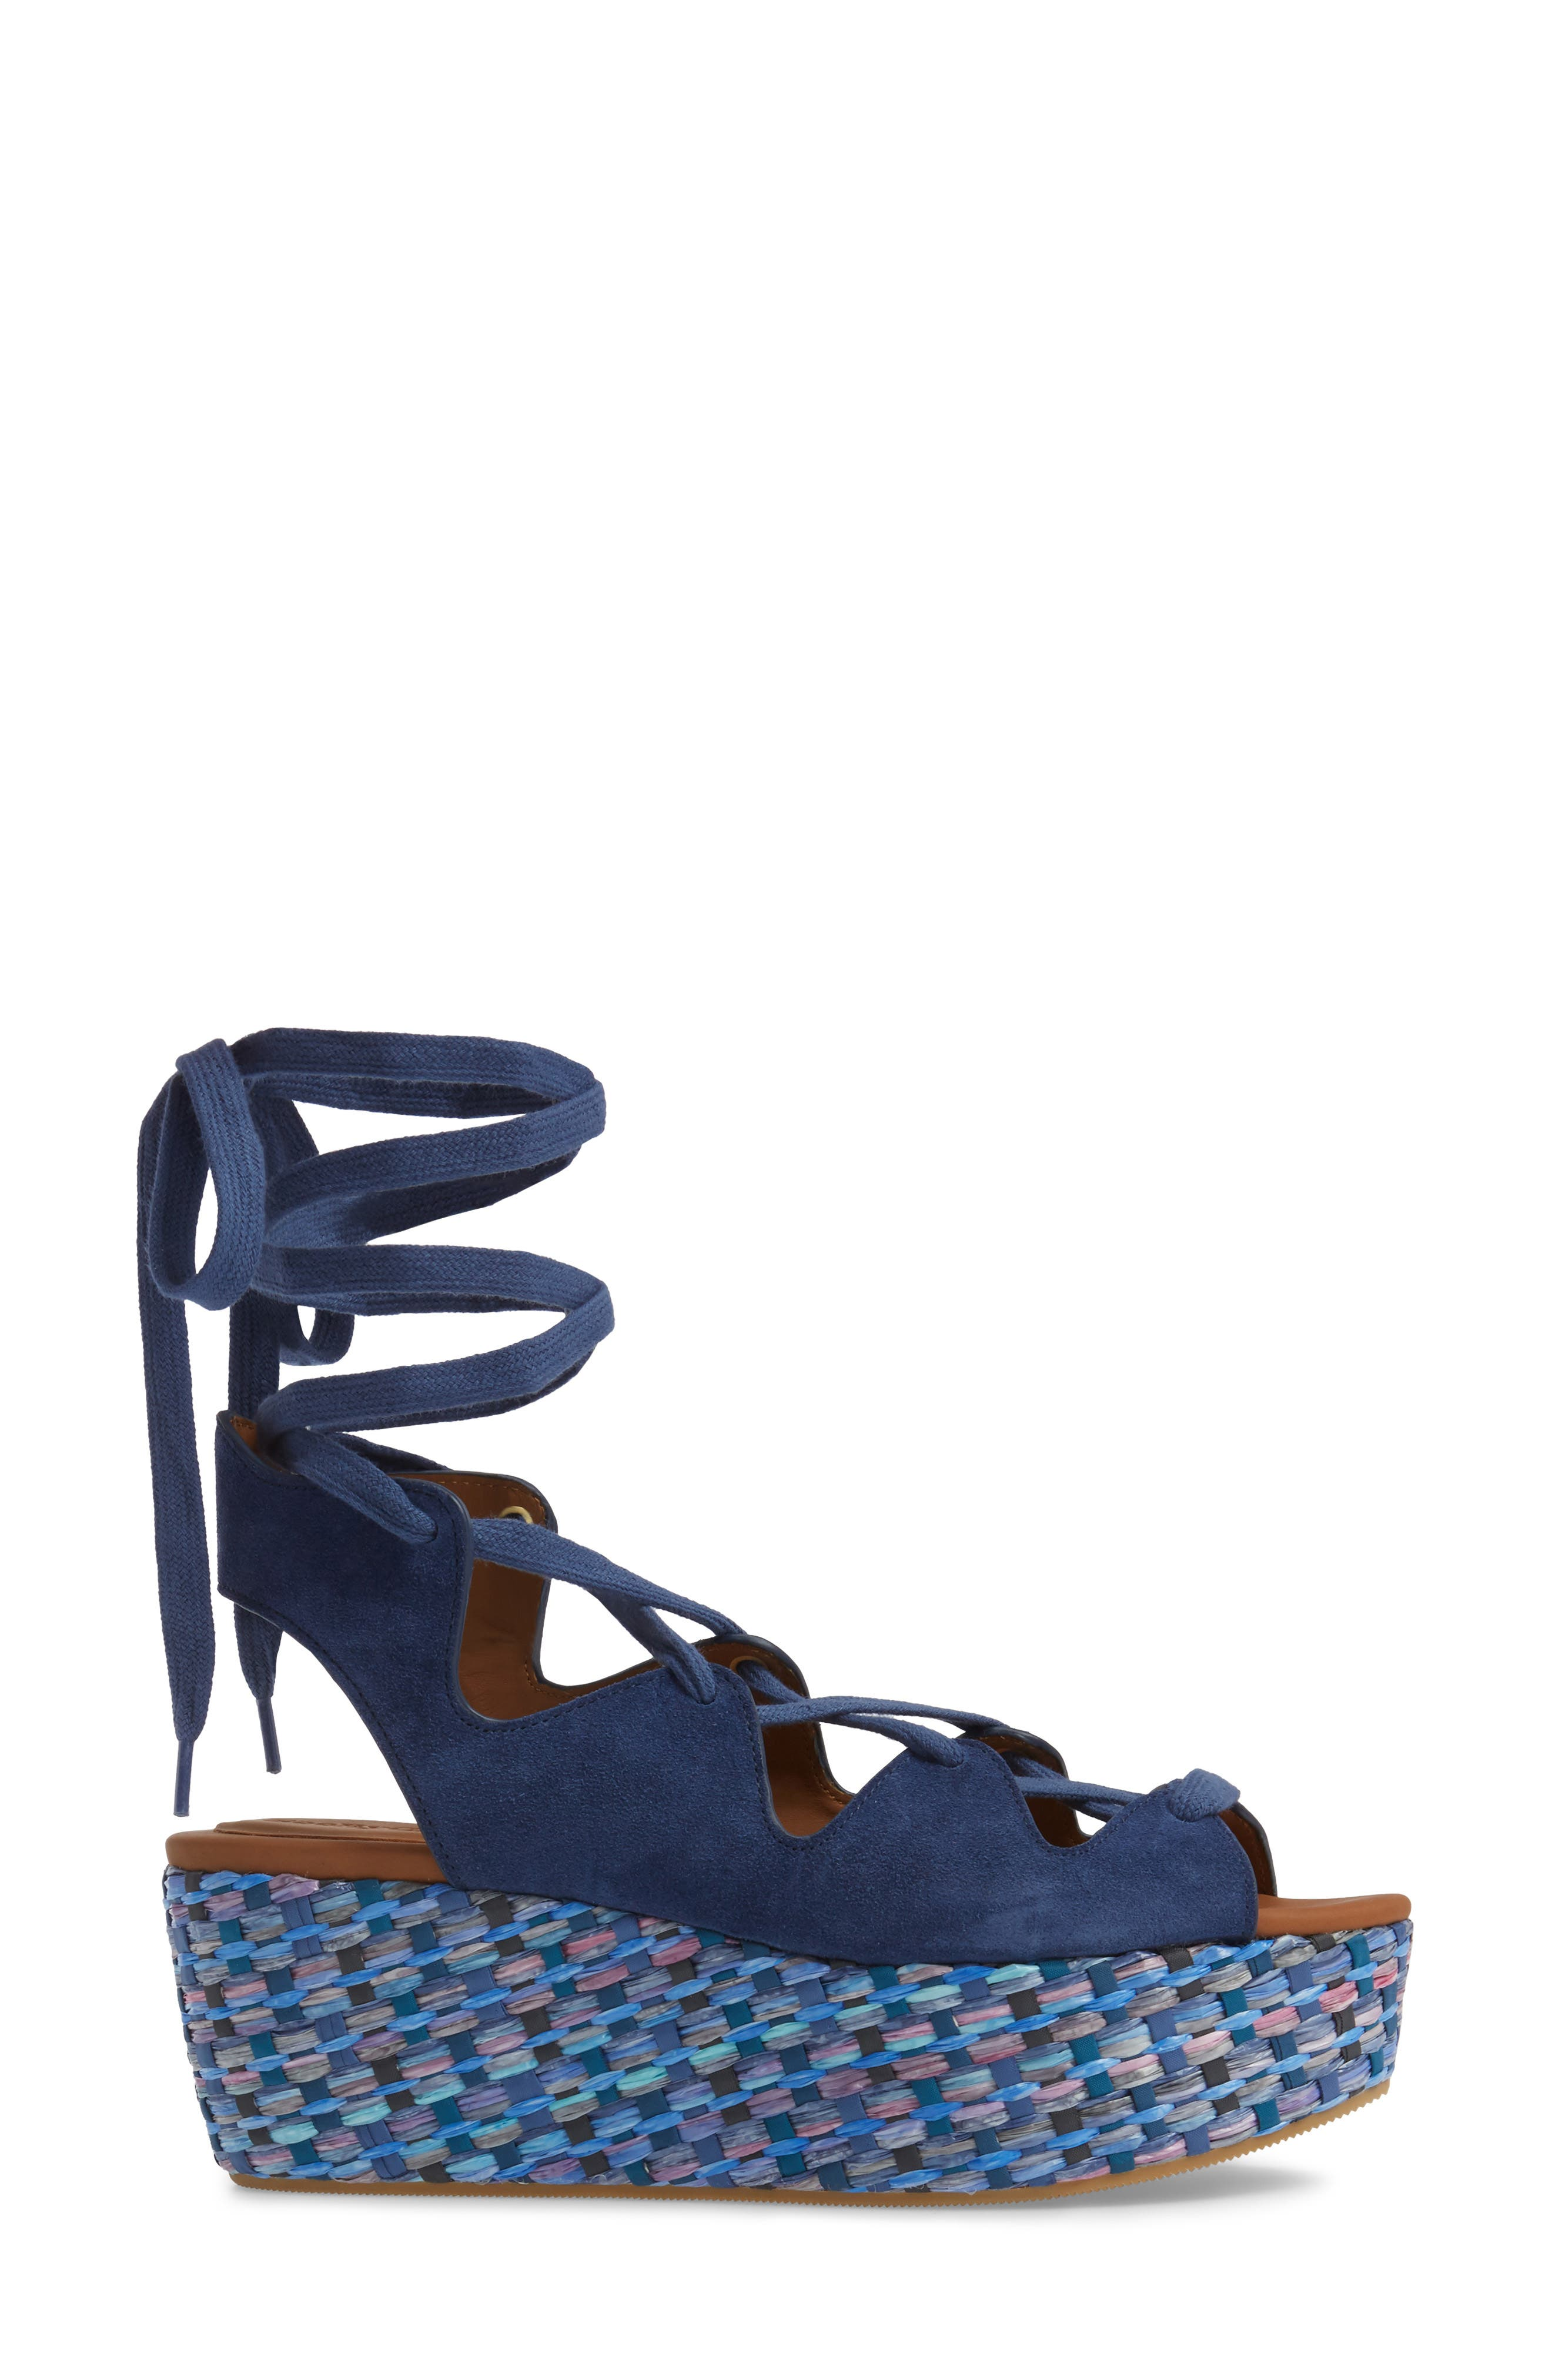 'Liana' Platform Wedge Sandal,                             Alternate thumbnail 3, color,                             Sugar